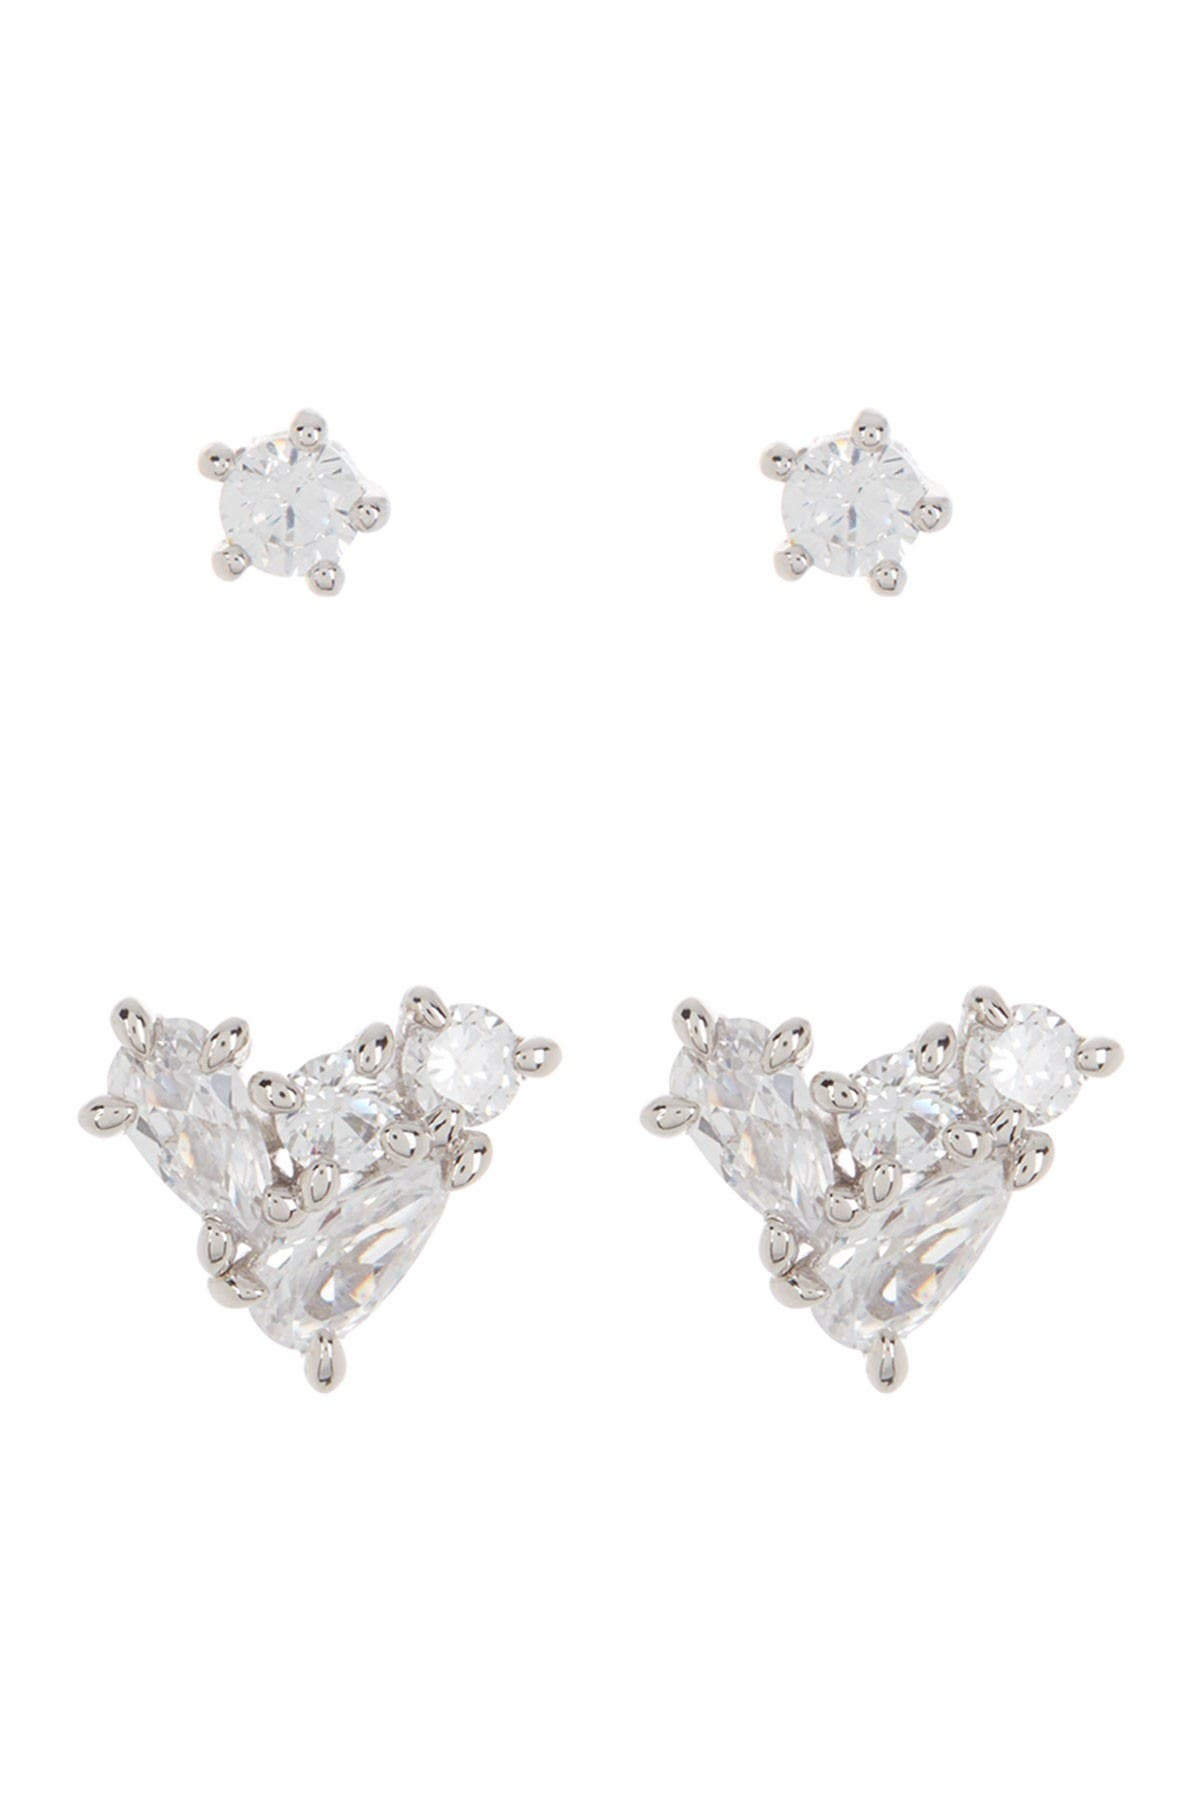 Image of NADRI Rhodium Plated Pave CZ Heart Cluster Stud Earrings - Set of 2